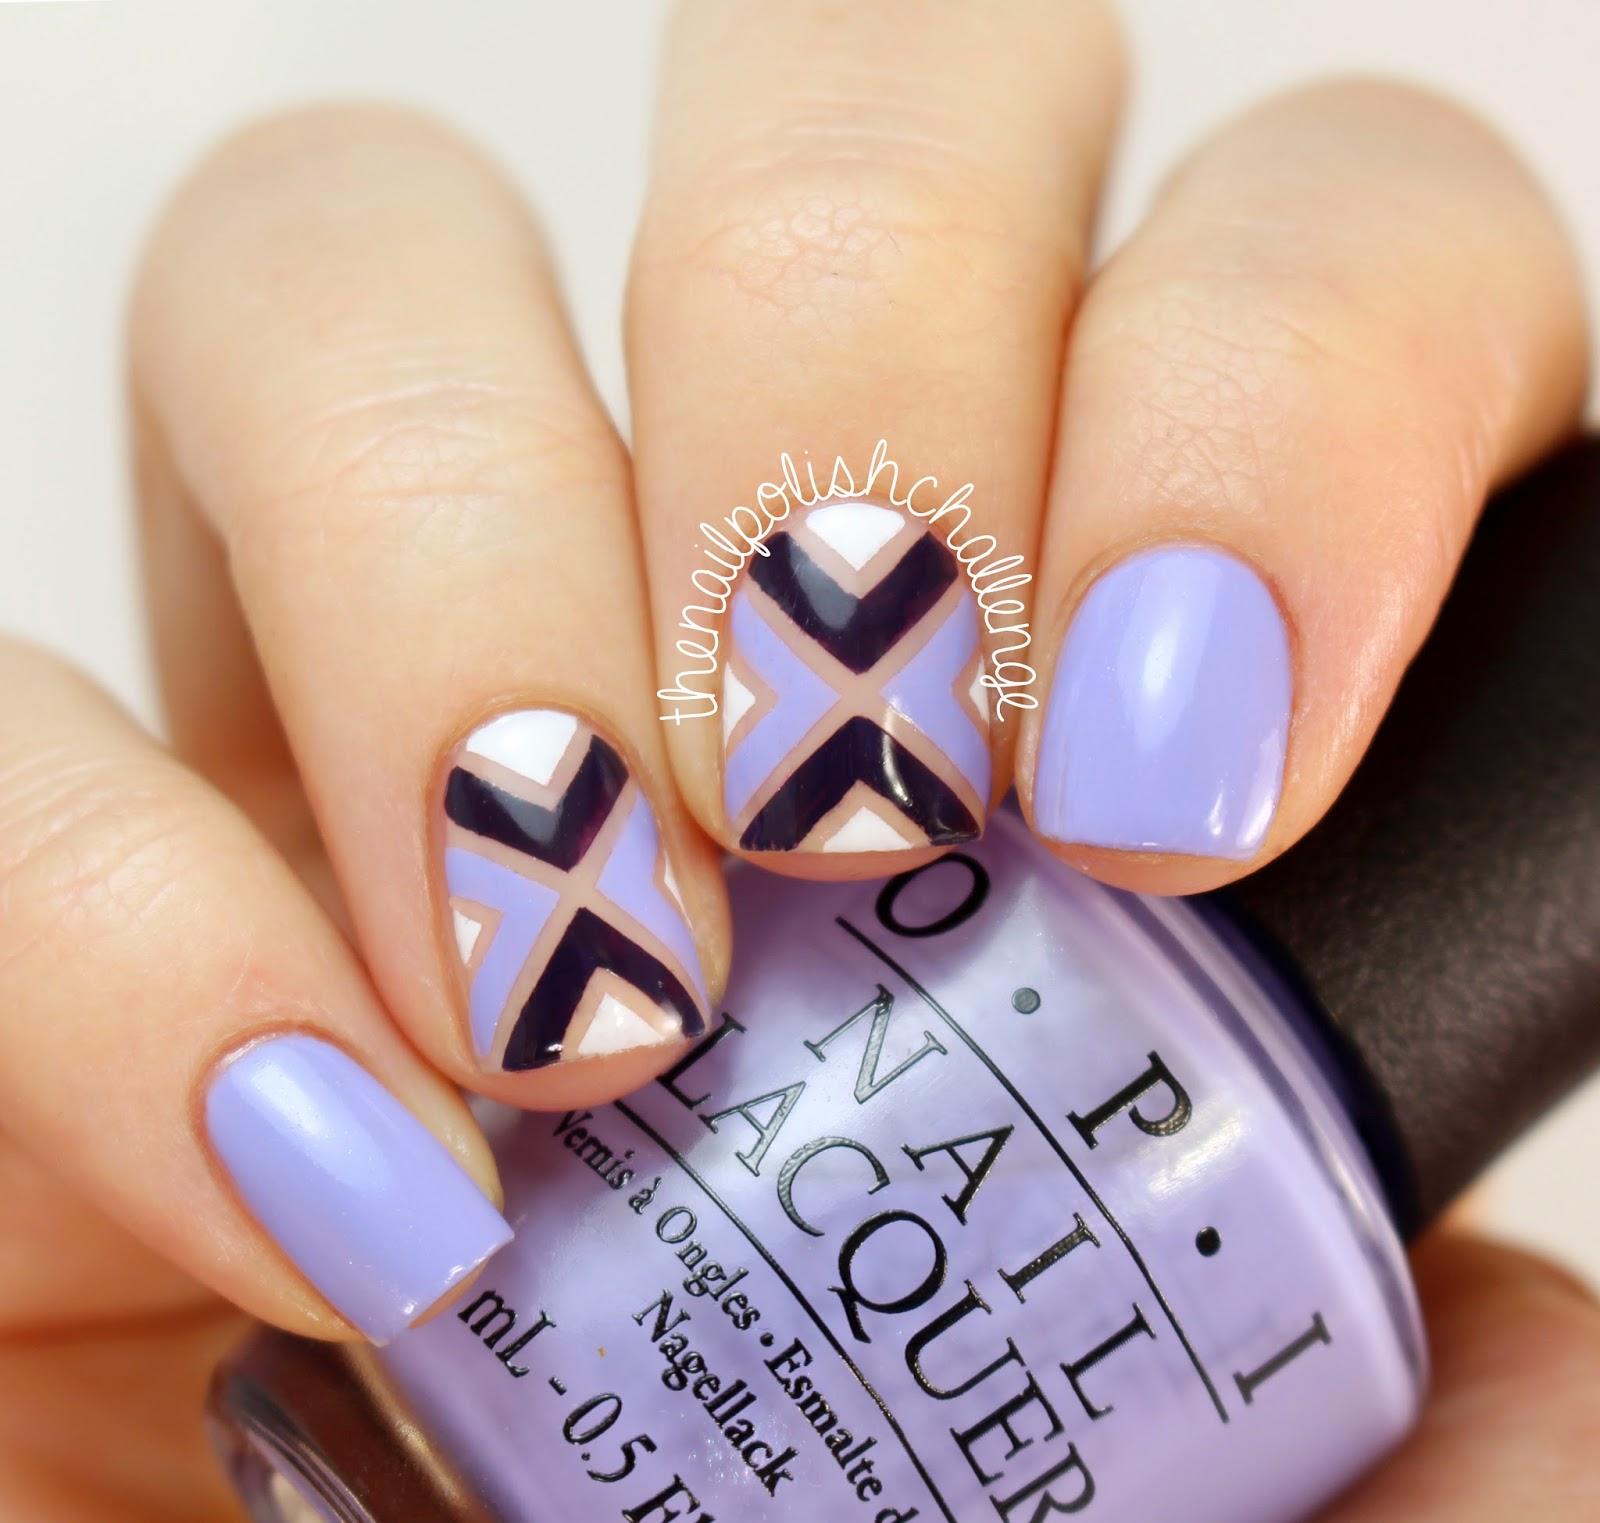 Kelli marissa purple opi striping tape nail art i started with a base of opi youre such a budapest on my outer two fingers and opi glints of glinda on my two middle nails then i taped off sections prinsesfo Choice Image